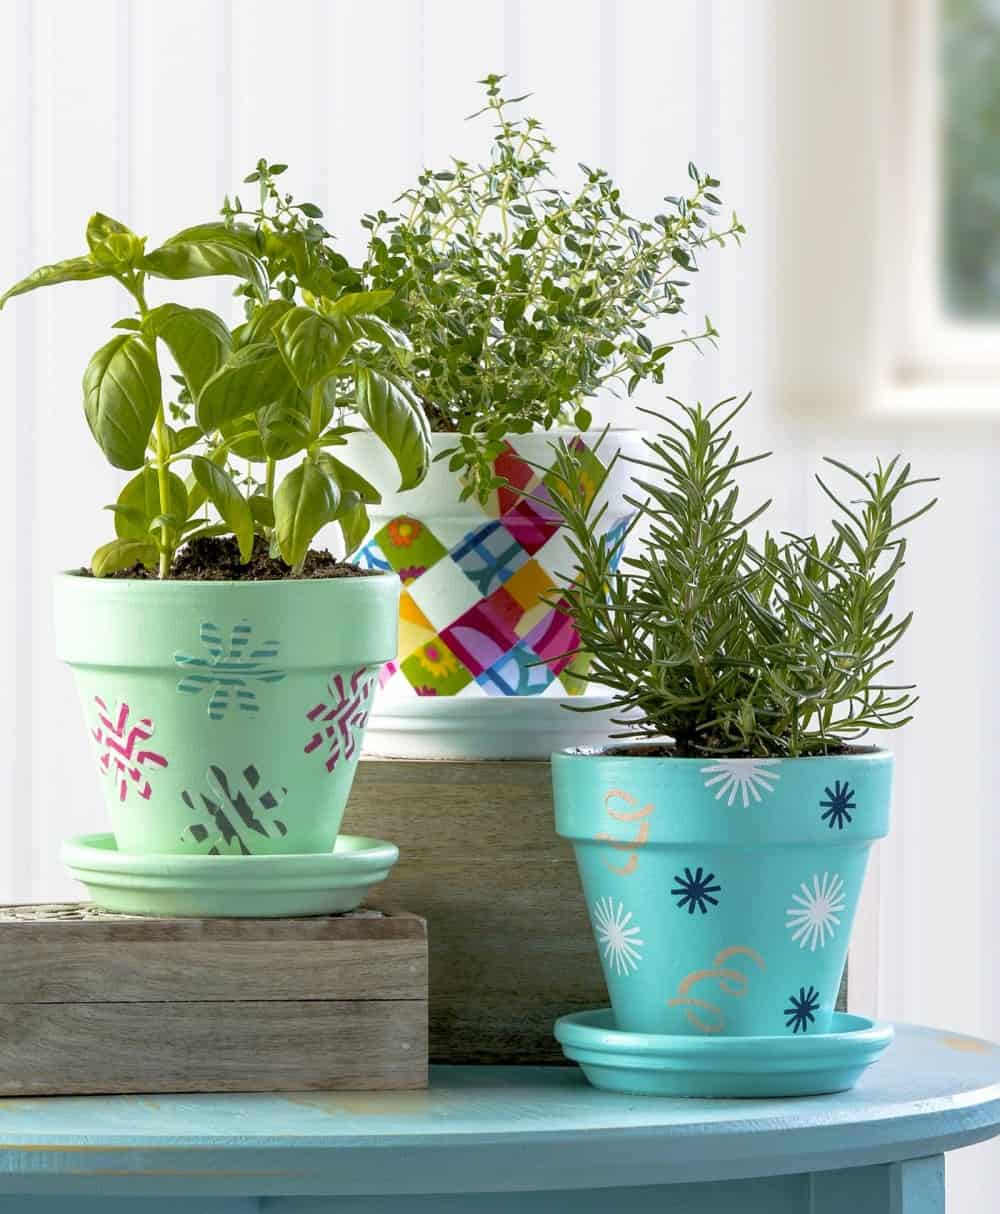 How To Decorate Clay Pots For An Herb Garden Mod Podge Rocks